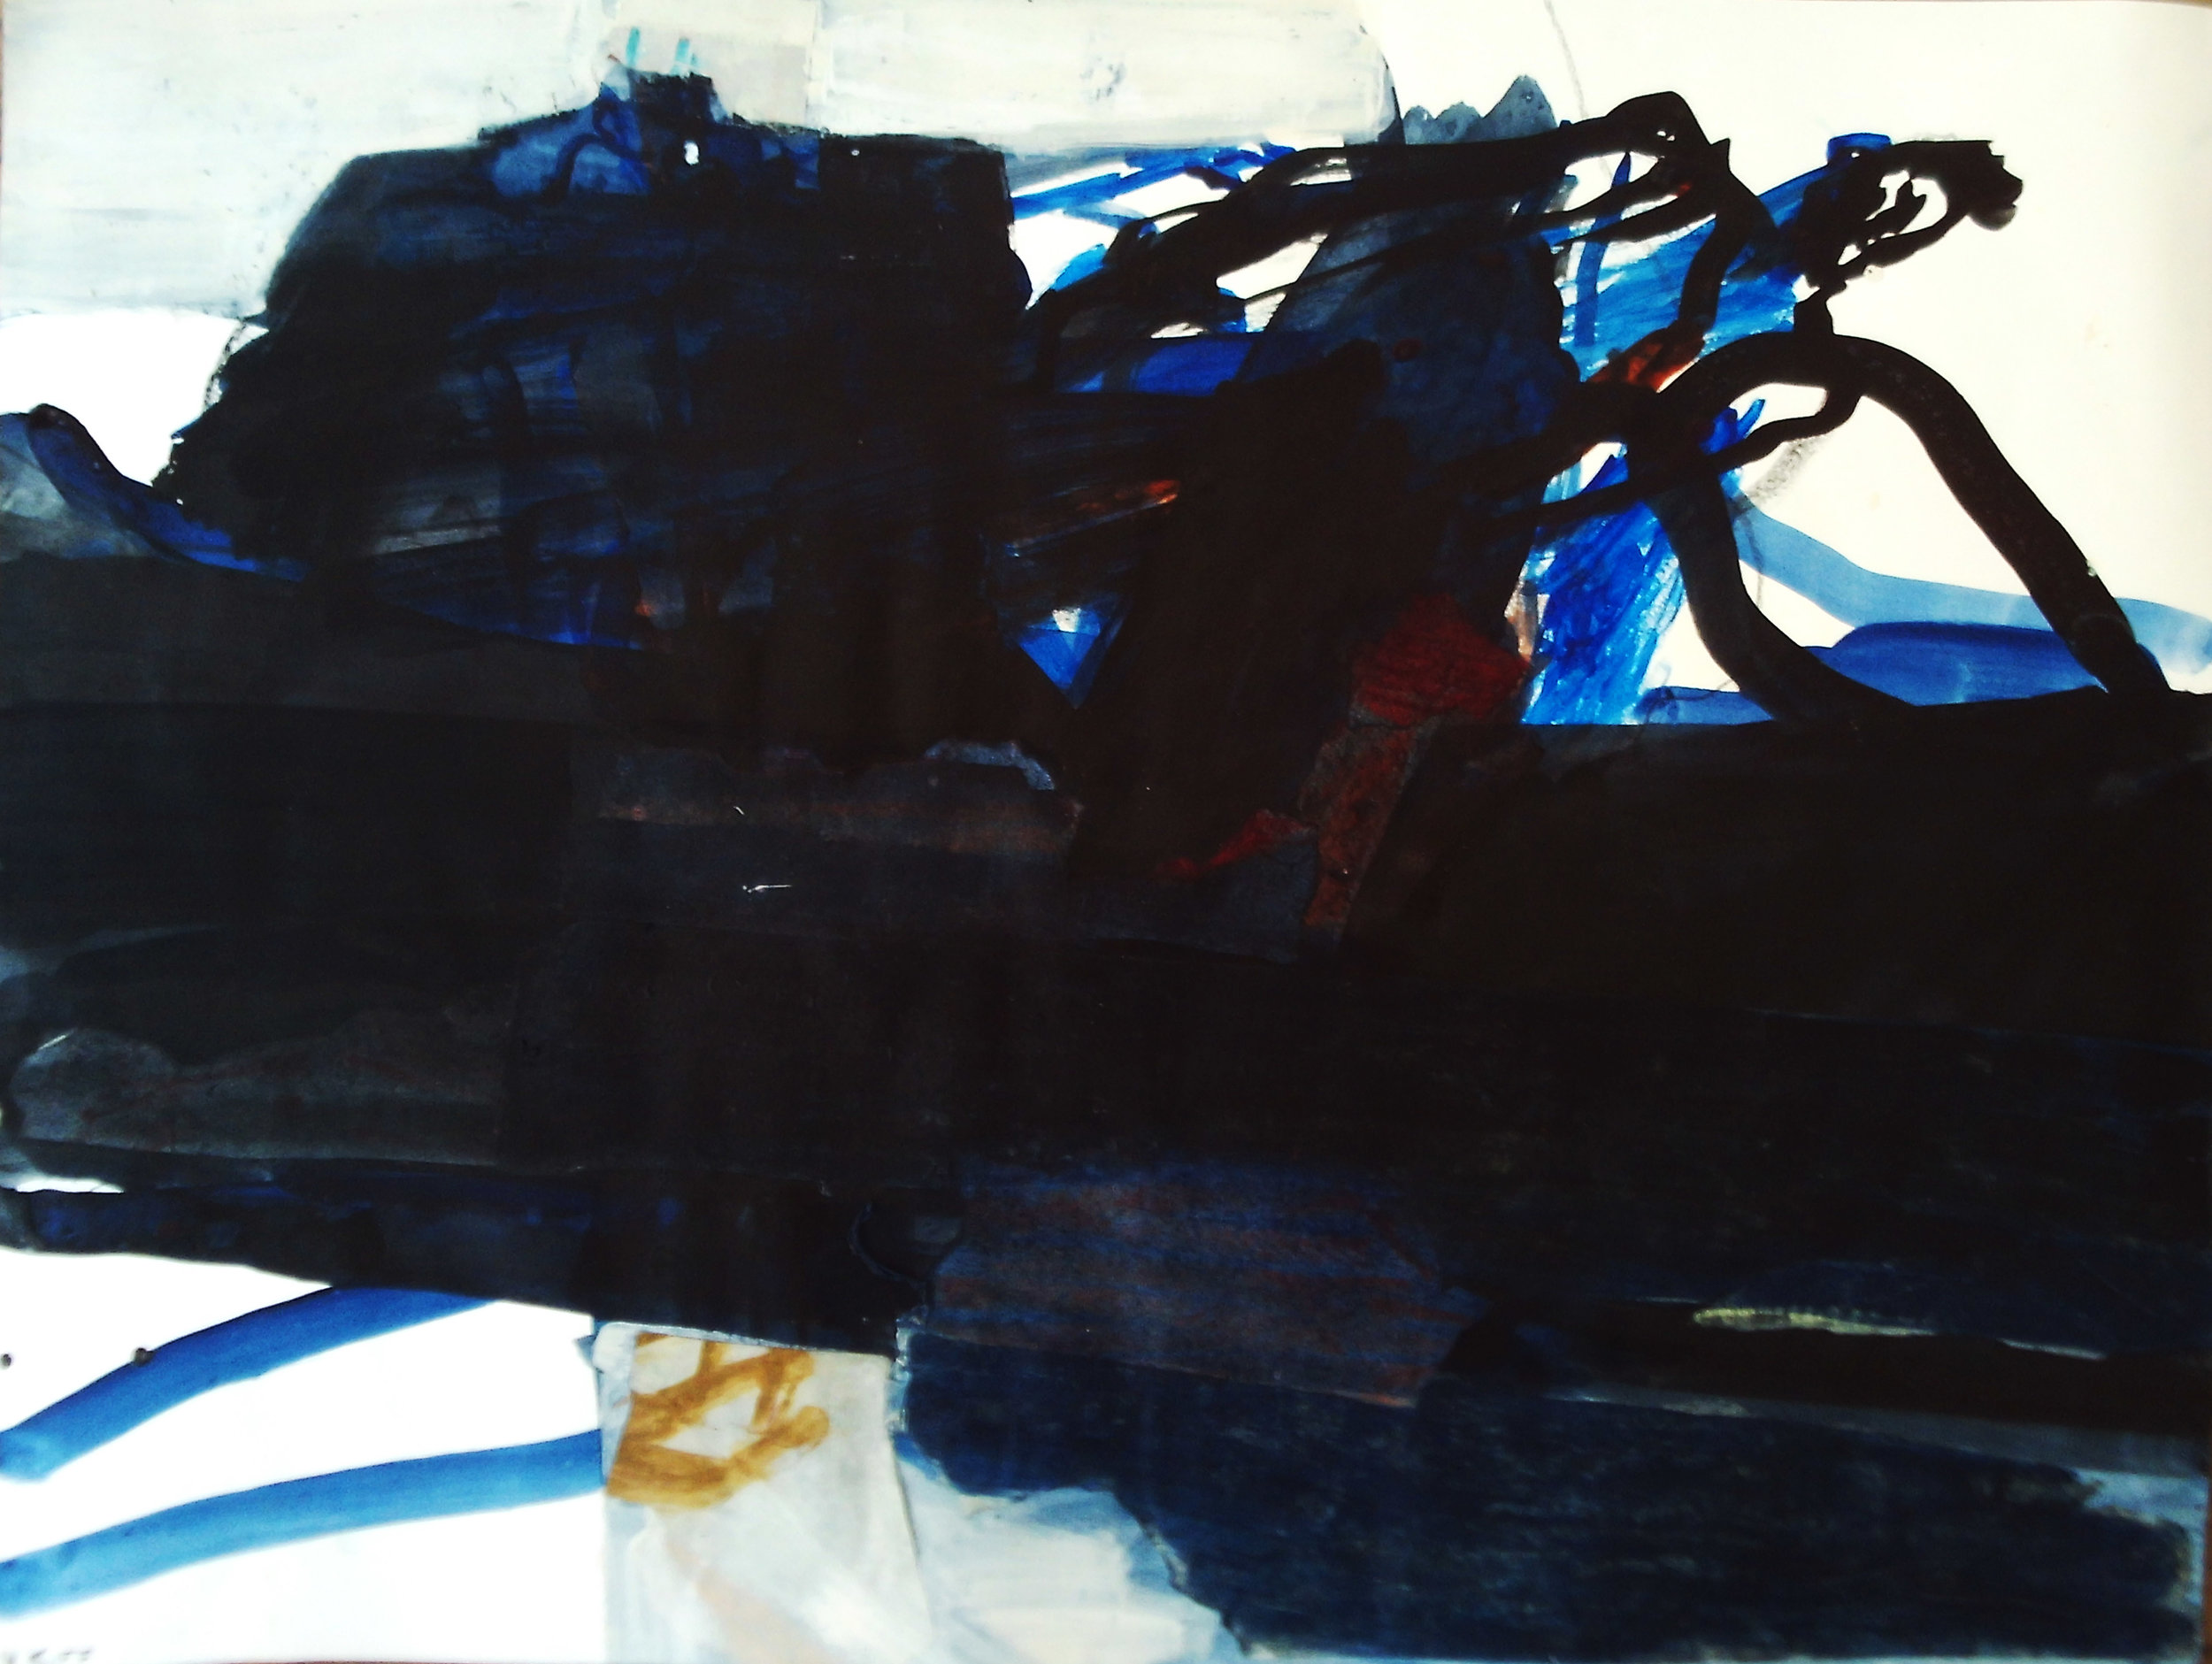 Artist: Victoria Kiff  Title: Danger in the Depths  Size: 65 x 85 cm  Medium: Ink on paper  Price: £1900   Buy Now